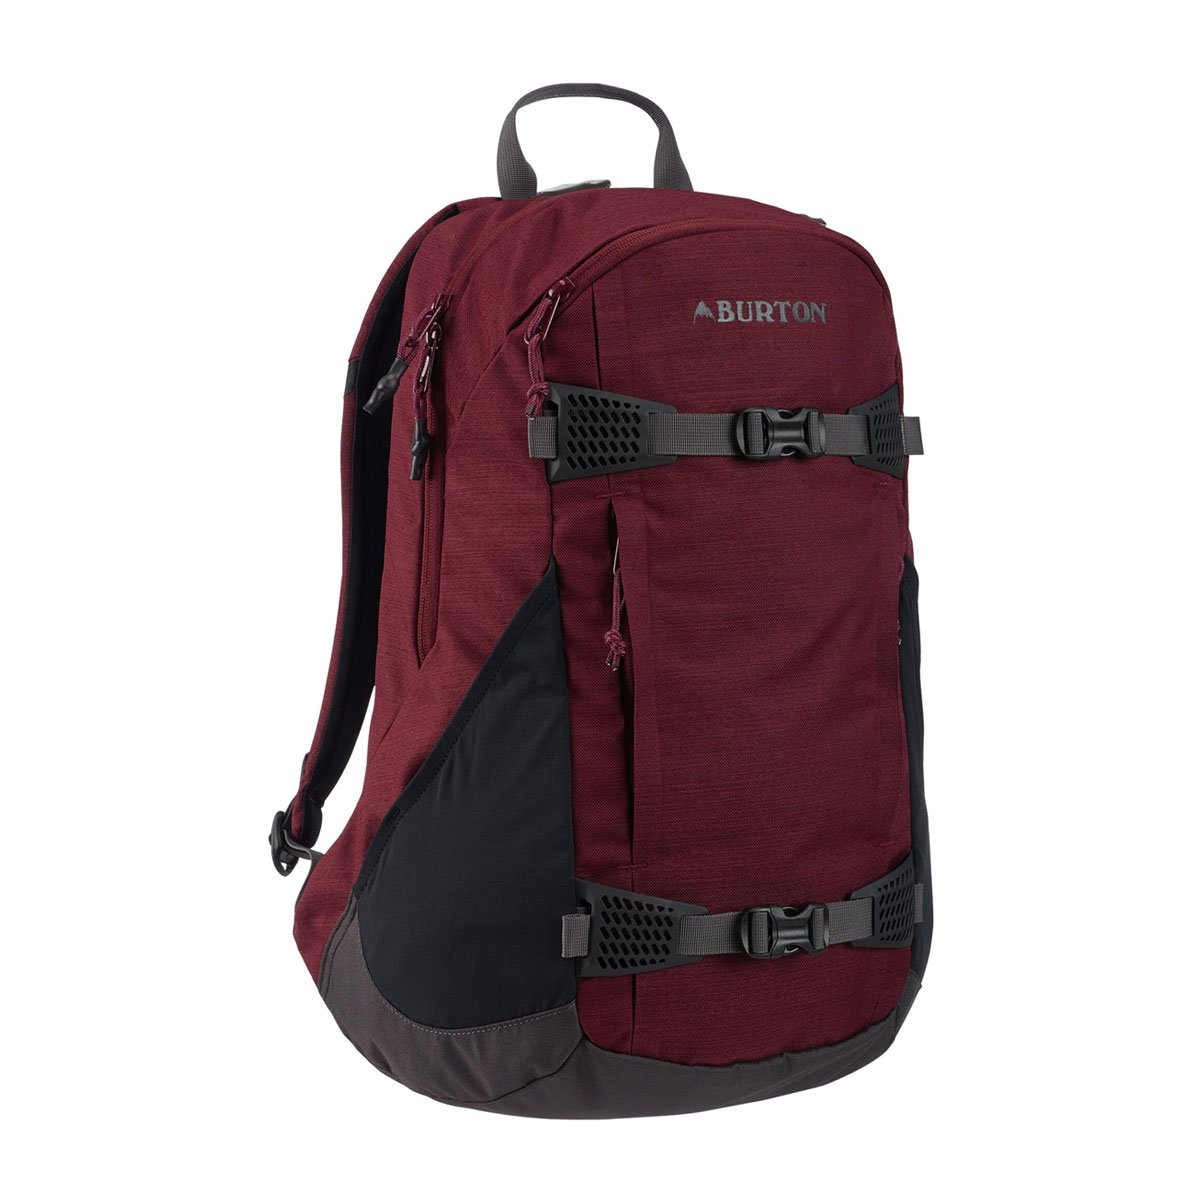 WMS DAY HIKER PACK